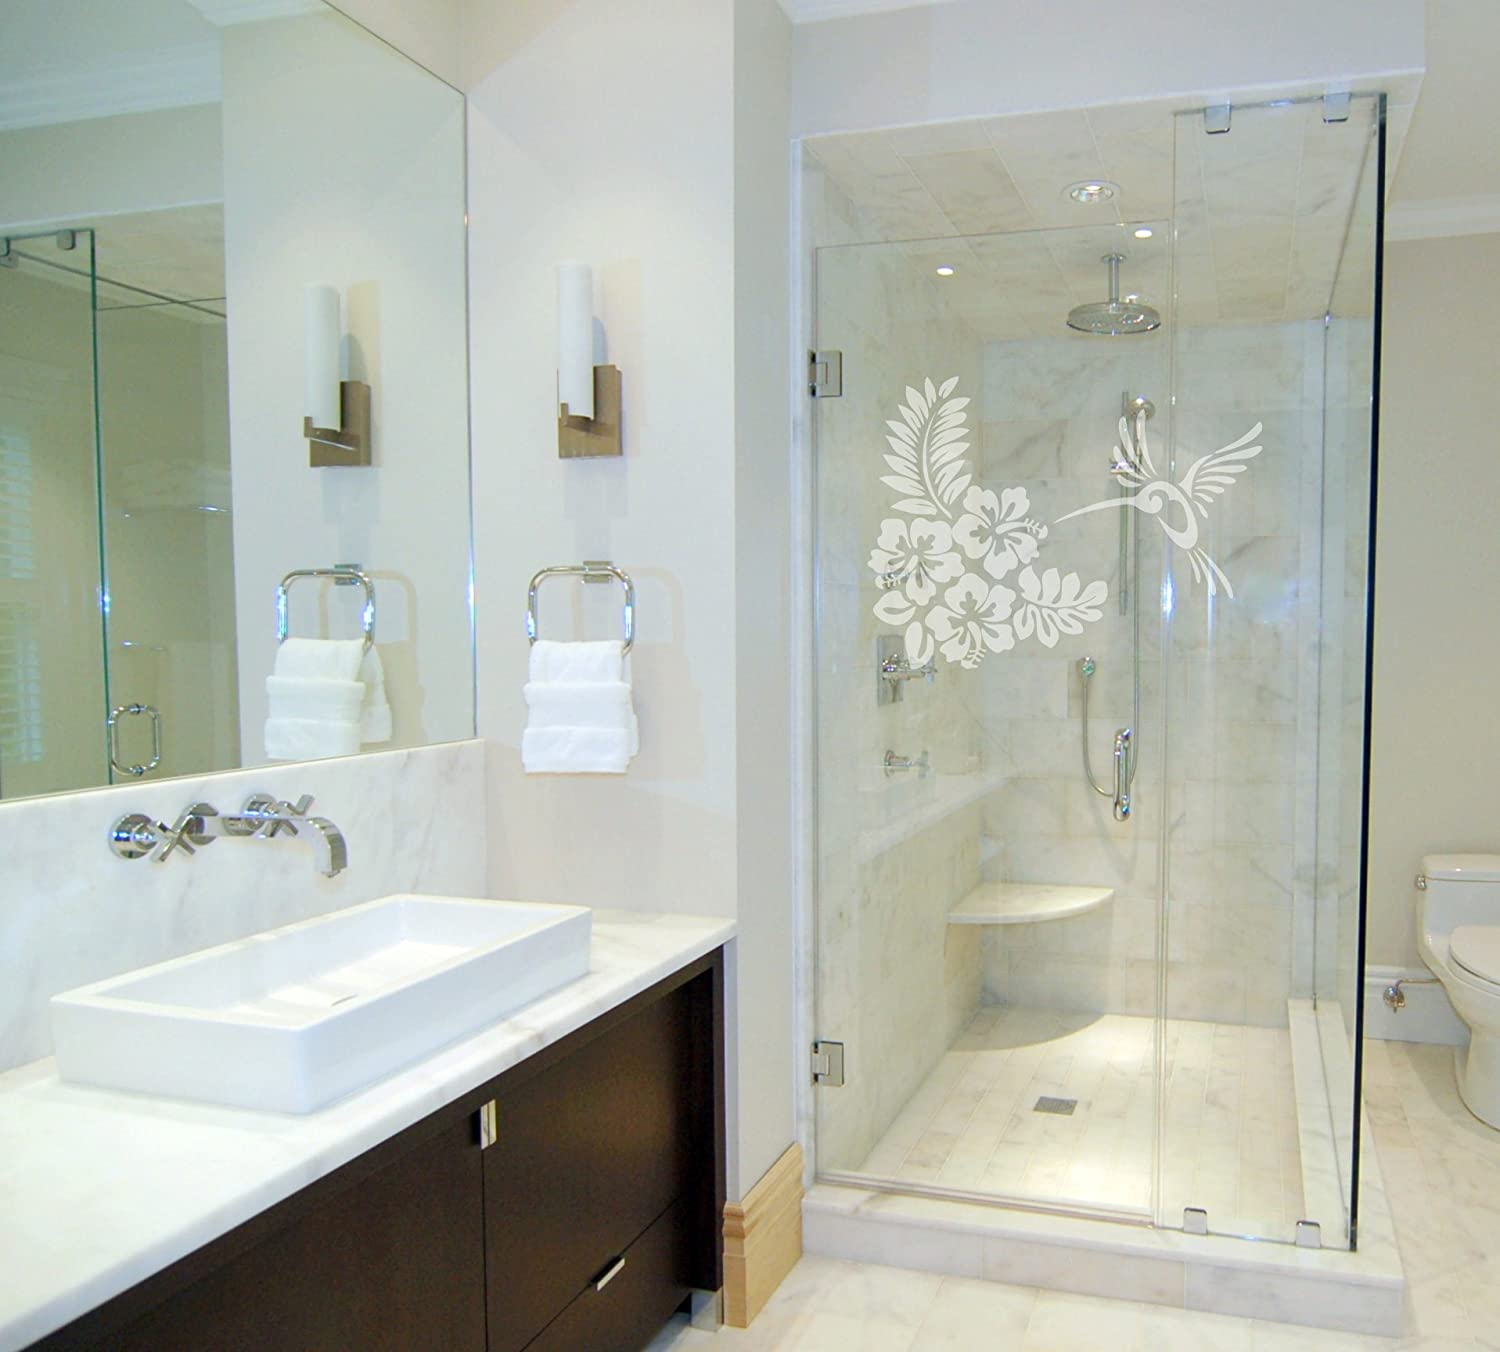 tag etched spare large parts ideas matrix door decalsetched glass installation acid doors size concept shower tags full epic home wonderful photos of